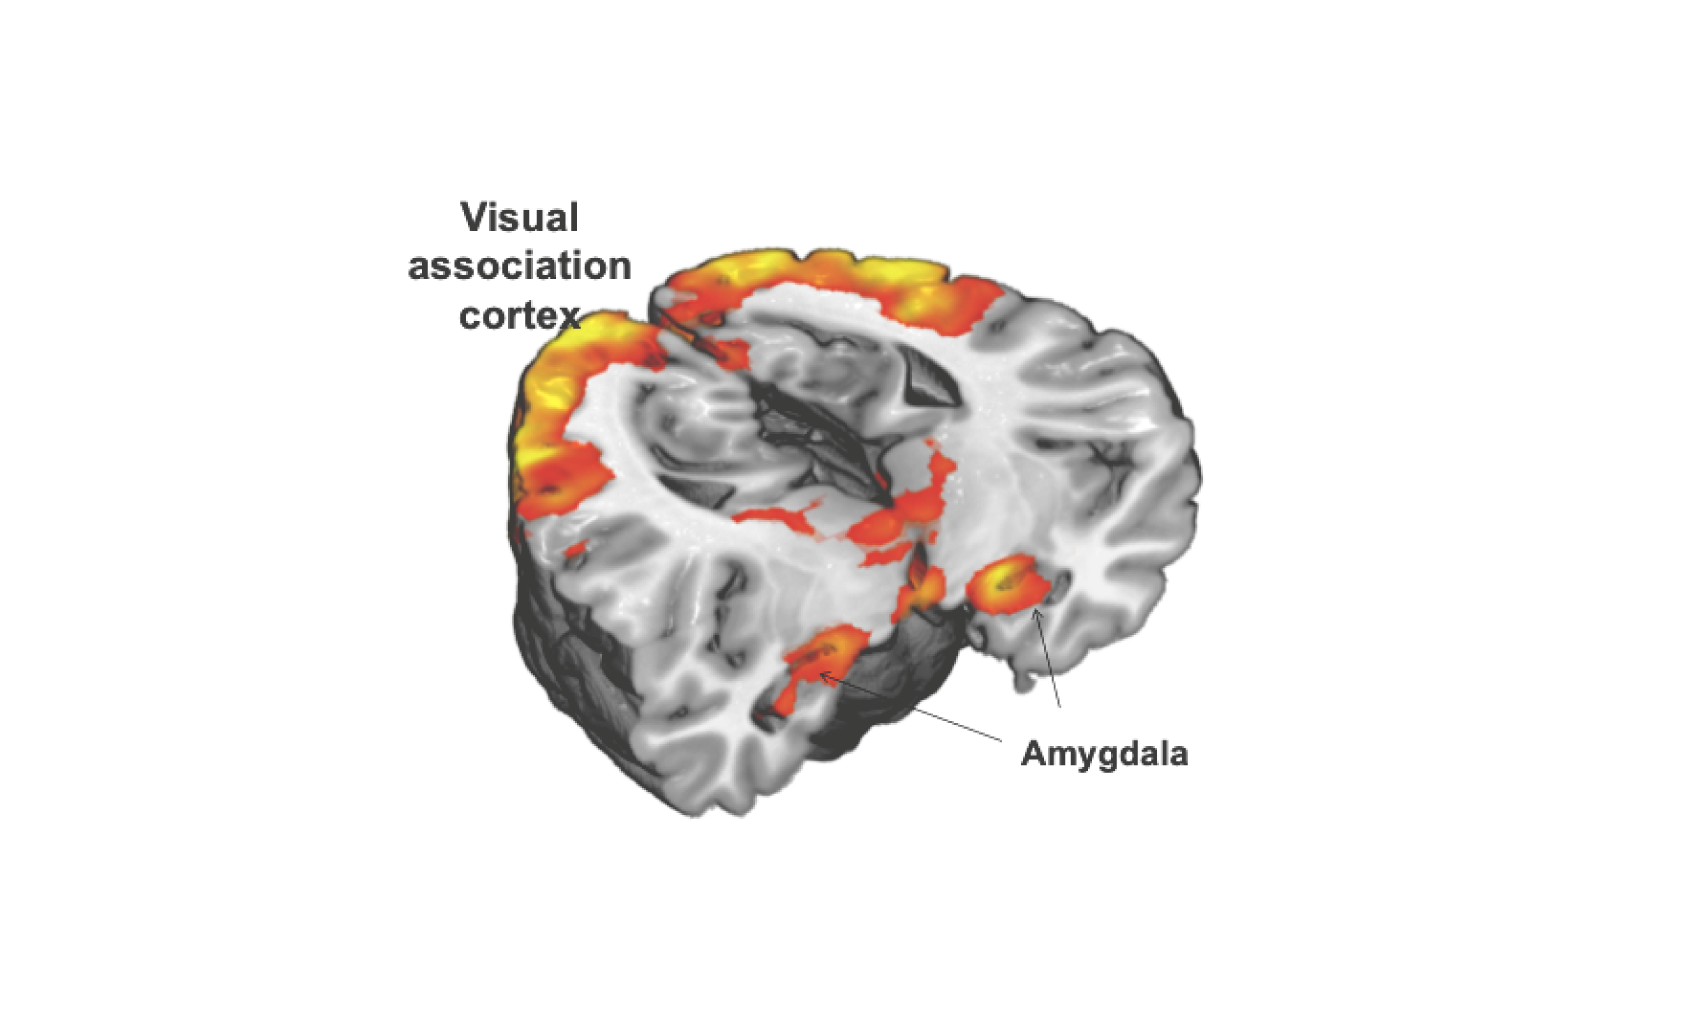 Amygdala and visual association cortex activation provoked by viewing emotionally evocative images in an fMRI BOLD paradigm